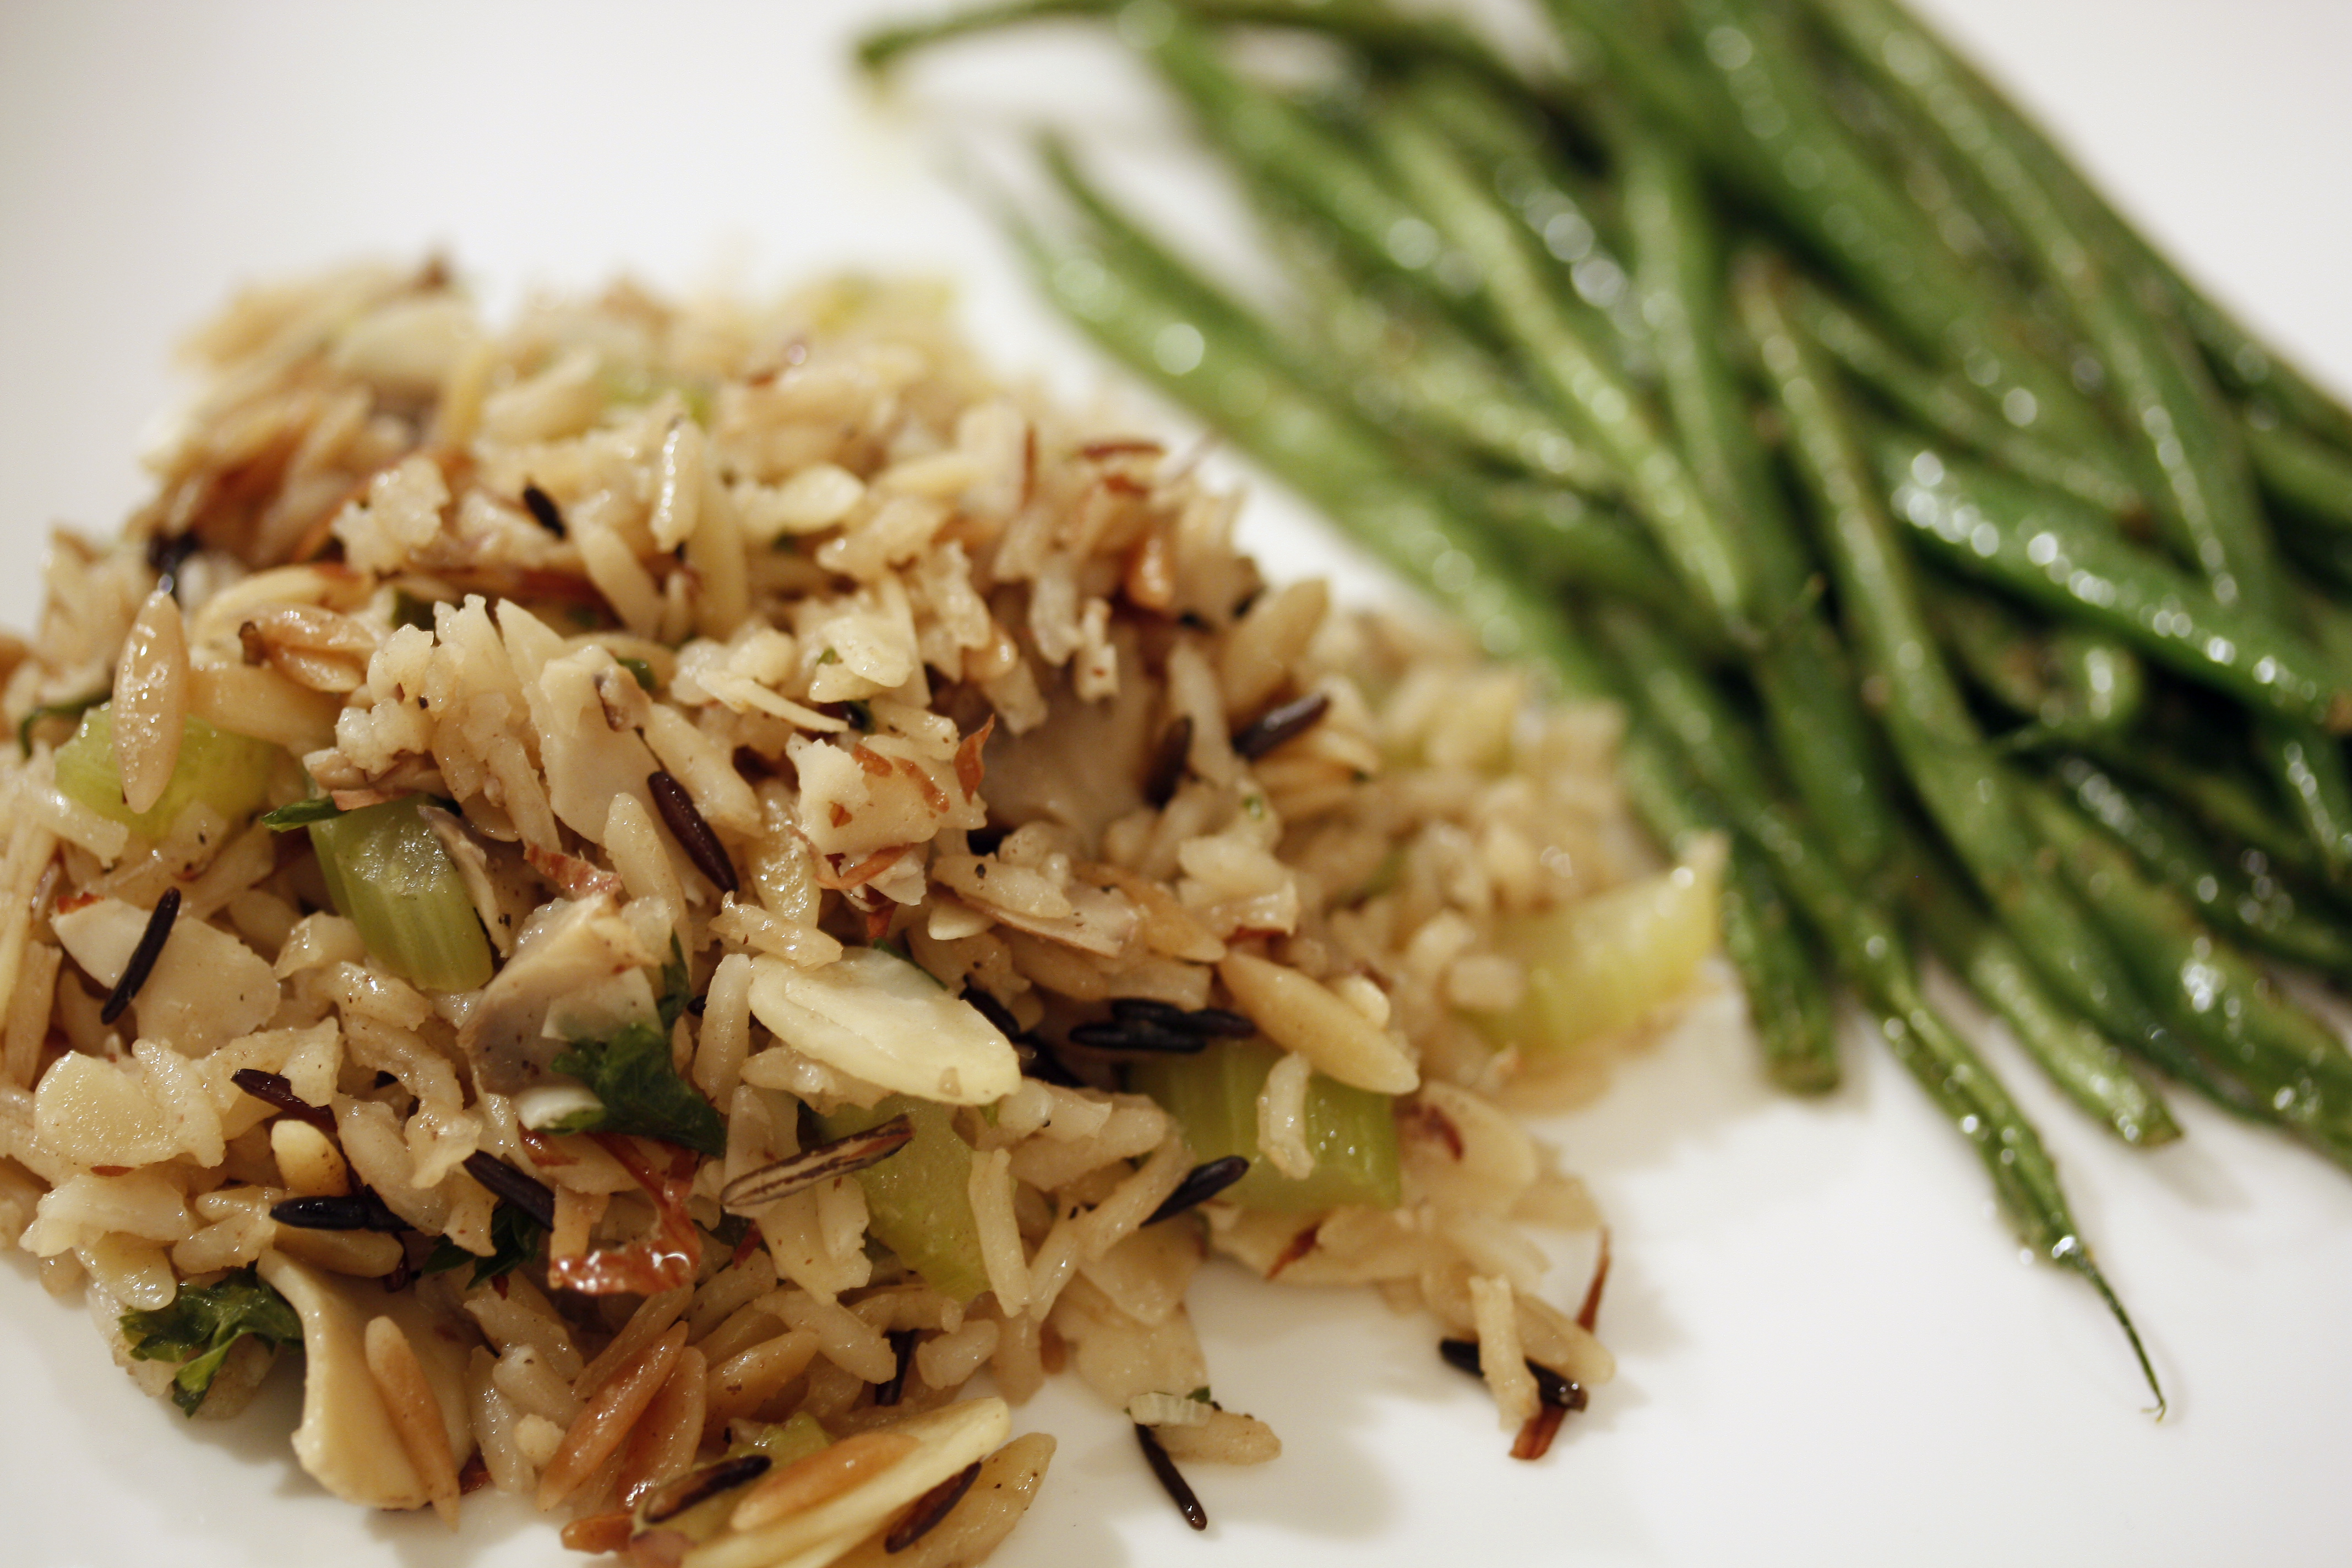 ... rice pilaf with orzo and pine nuts ingredients cooker rice pilaf